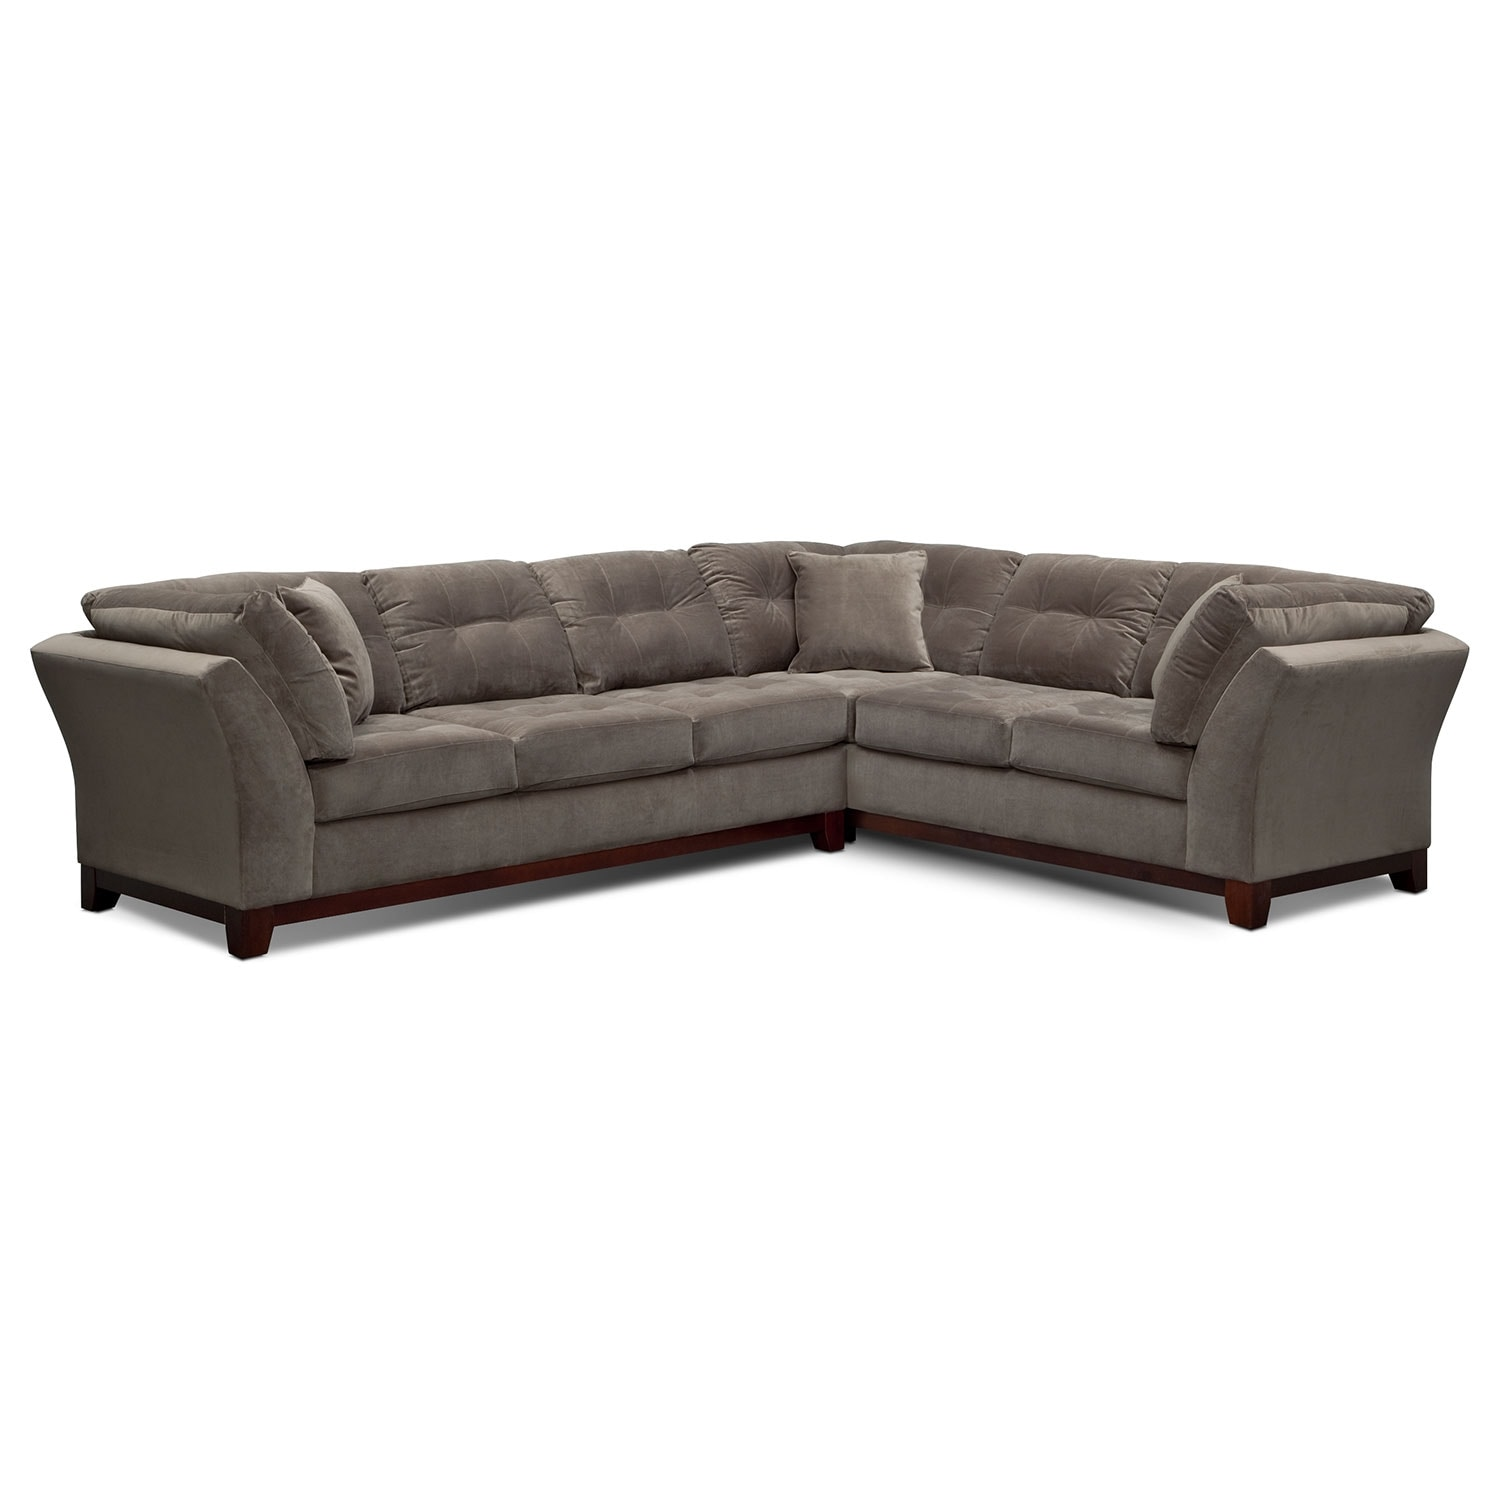 Modular Sofa Gumtree Perth Restoration Hardware Sleeper Sofa Sleper Sofa Interior